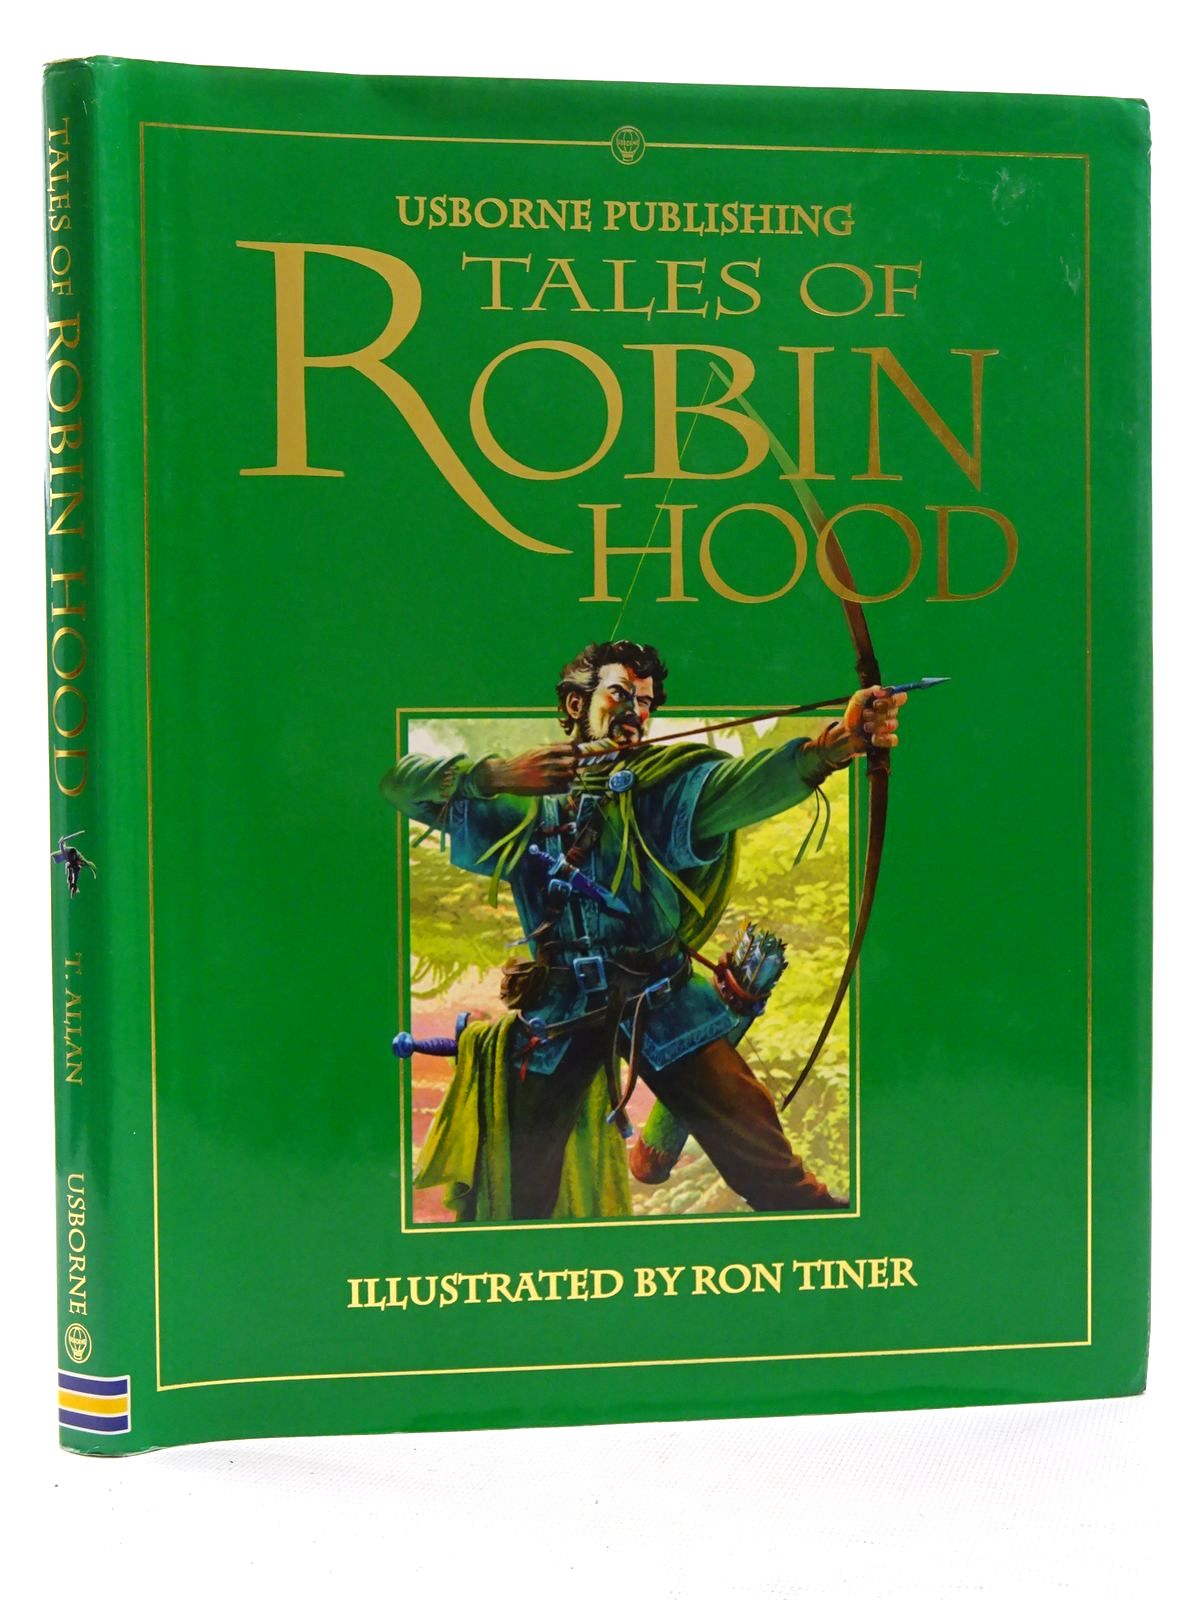 Photo of TALES OF ROBIN HOOD written by Allan, Tony illustrated by Tiner, Ron published by Usborne Publishing Ltd. (STOCK CODE: 2125225)  for sale by Stella & Rose's Books